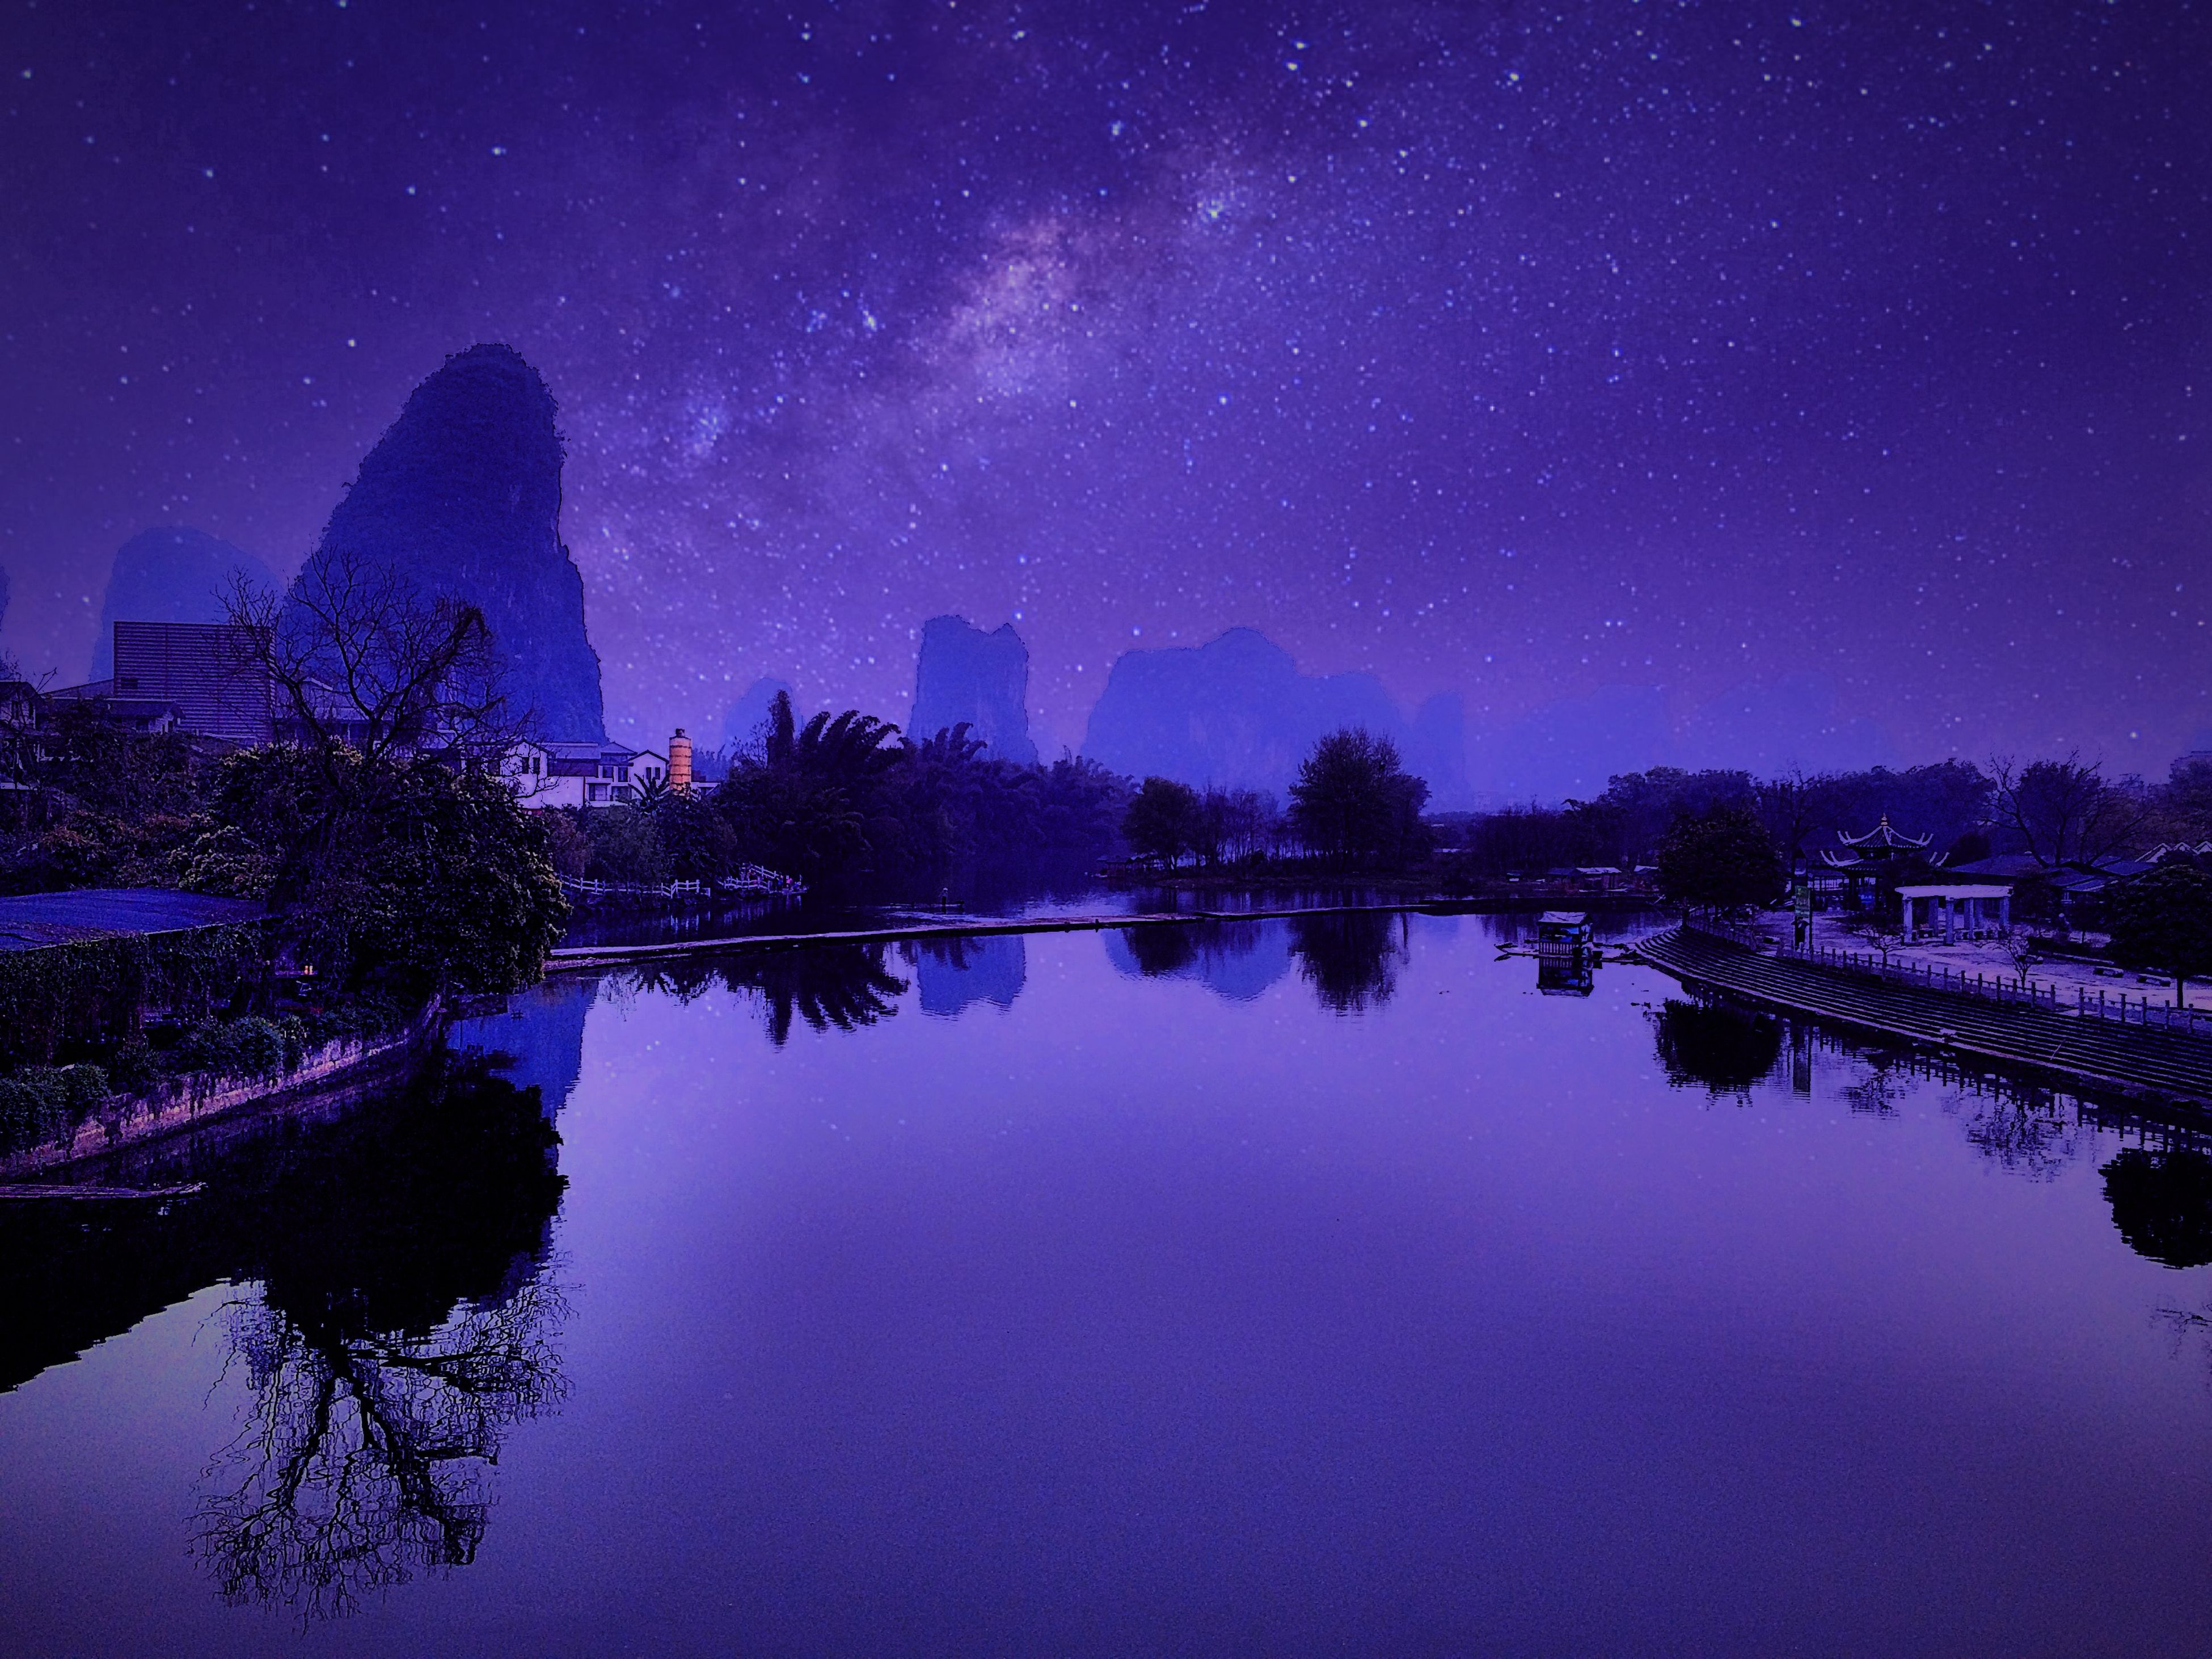 night, illuminated, star - space, star field, sky, astronomy, reflection, scenics, tree, beauty in nature, star, tranquil scene, tranquility, low angle view, nature, galaxy, moon, space, dark, majestic